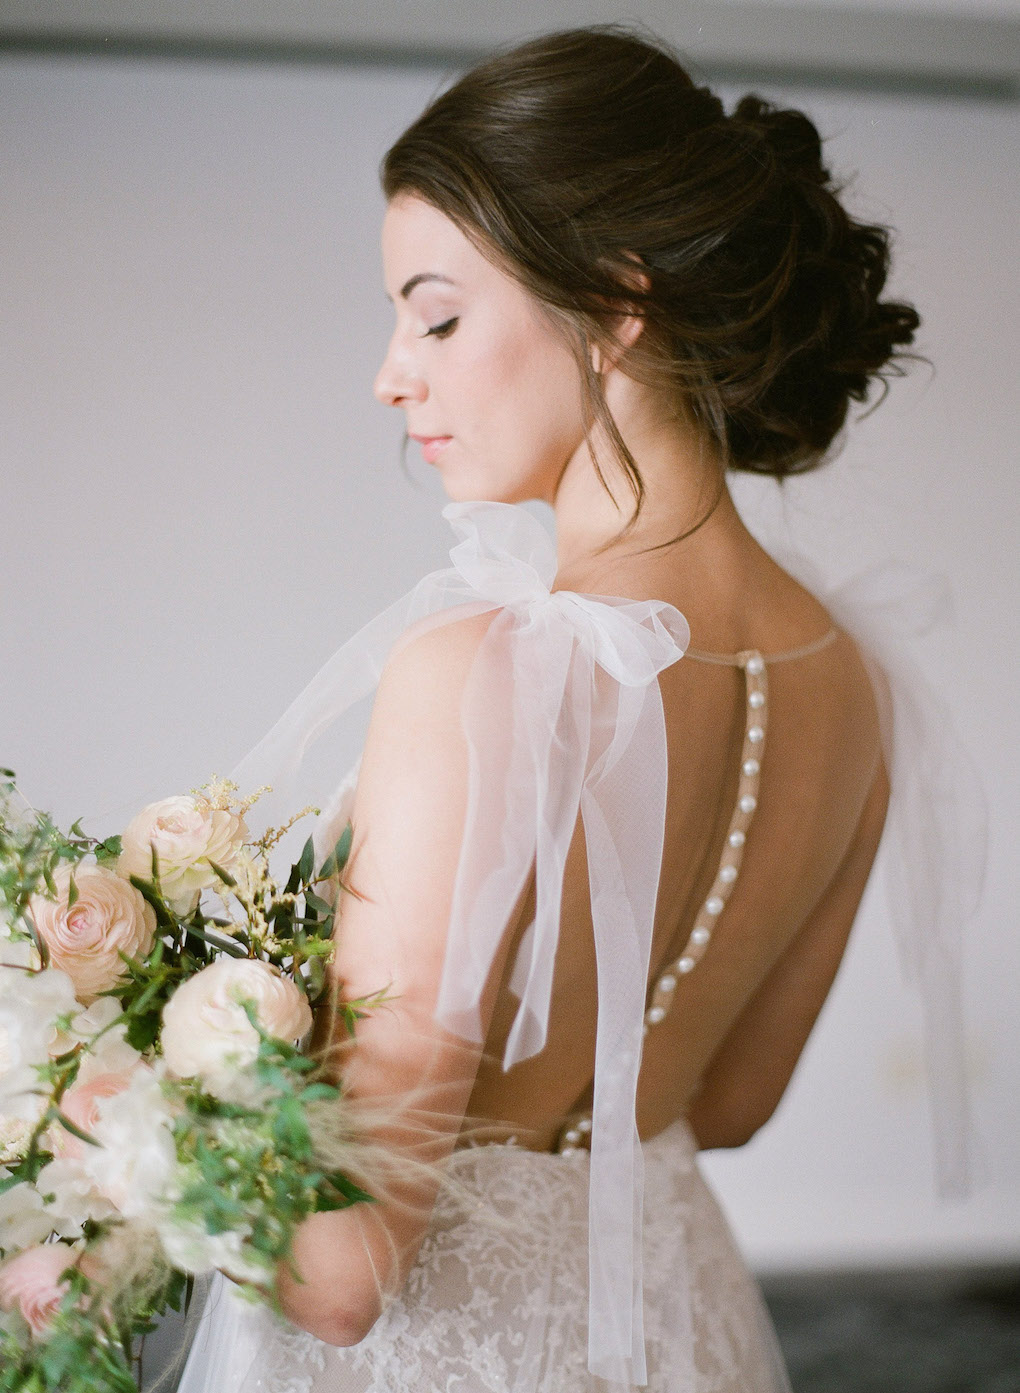 Gorgeous wedding dress details: Soft and Subtle Palettes of Spring Blossoms | Editorial Shoot at The Renaissance Pittsburgh by Exhale Events. See more inspiration at exhale-events.com!